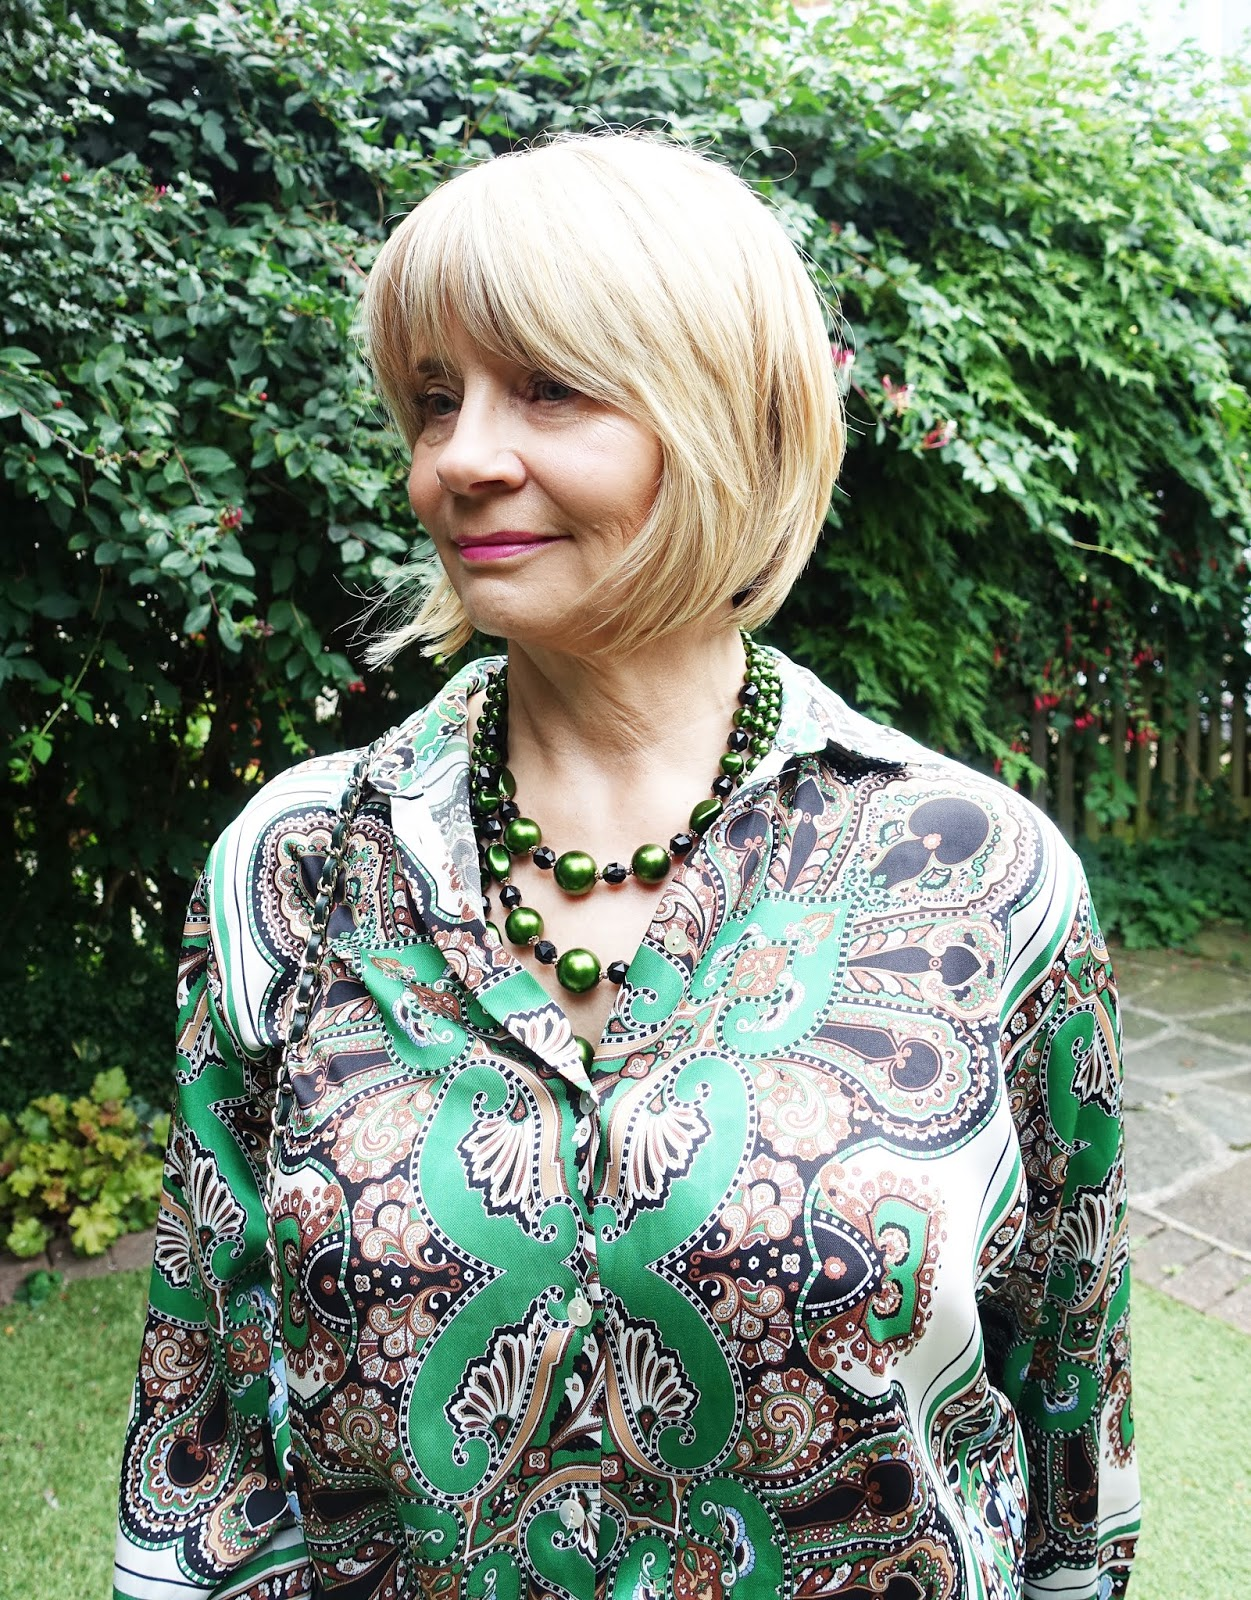 Vintage green beads add a quirky touch to a paisley style blouse from Zara